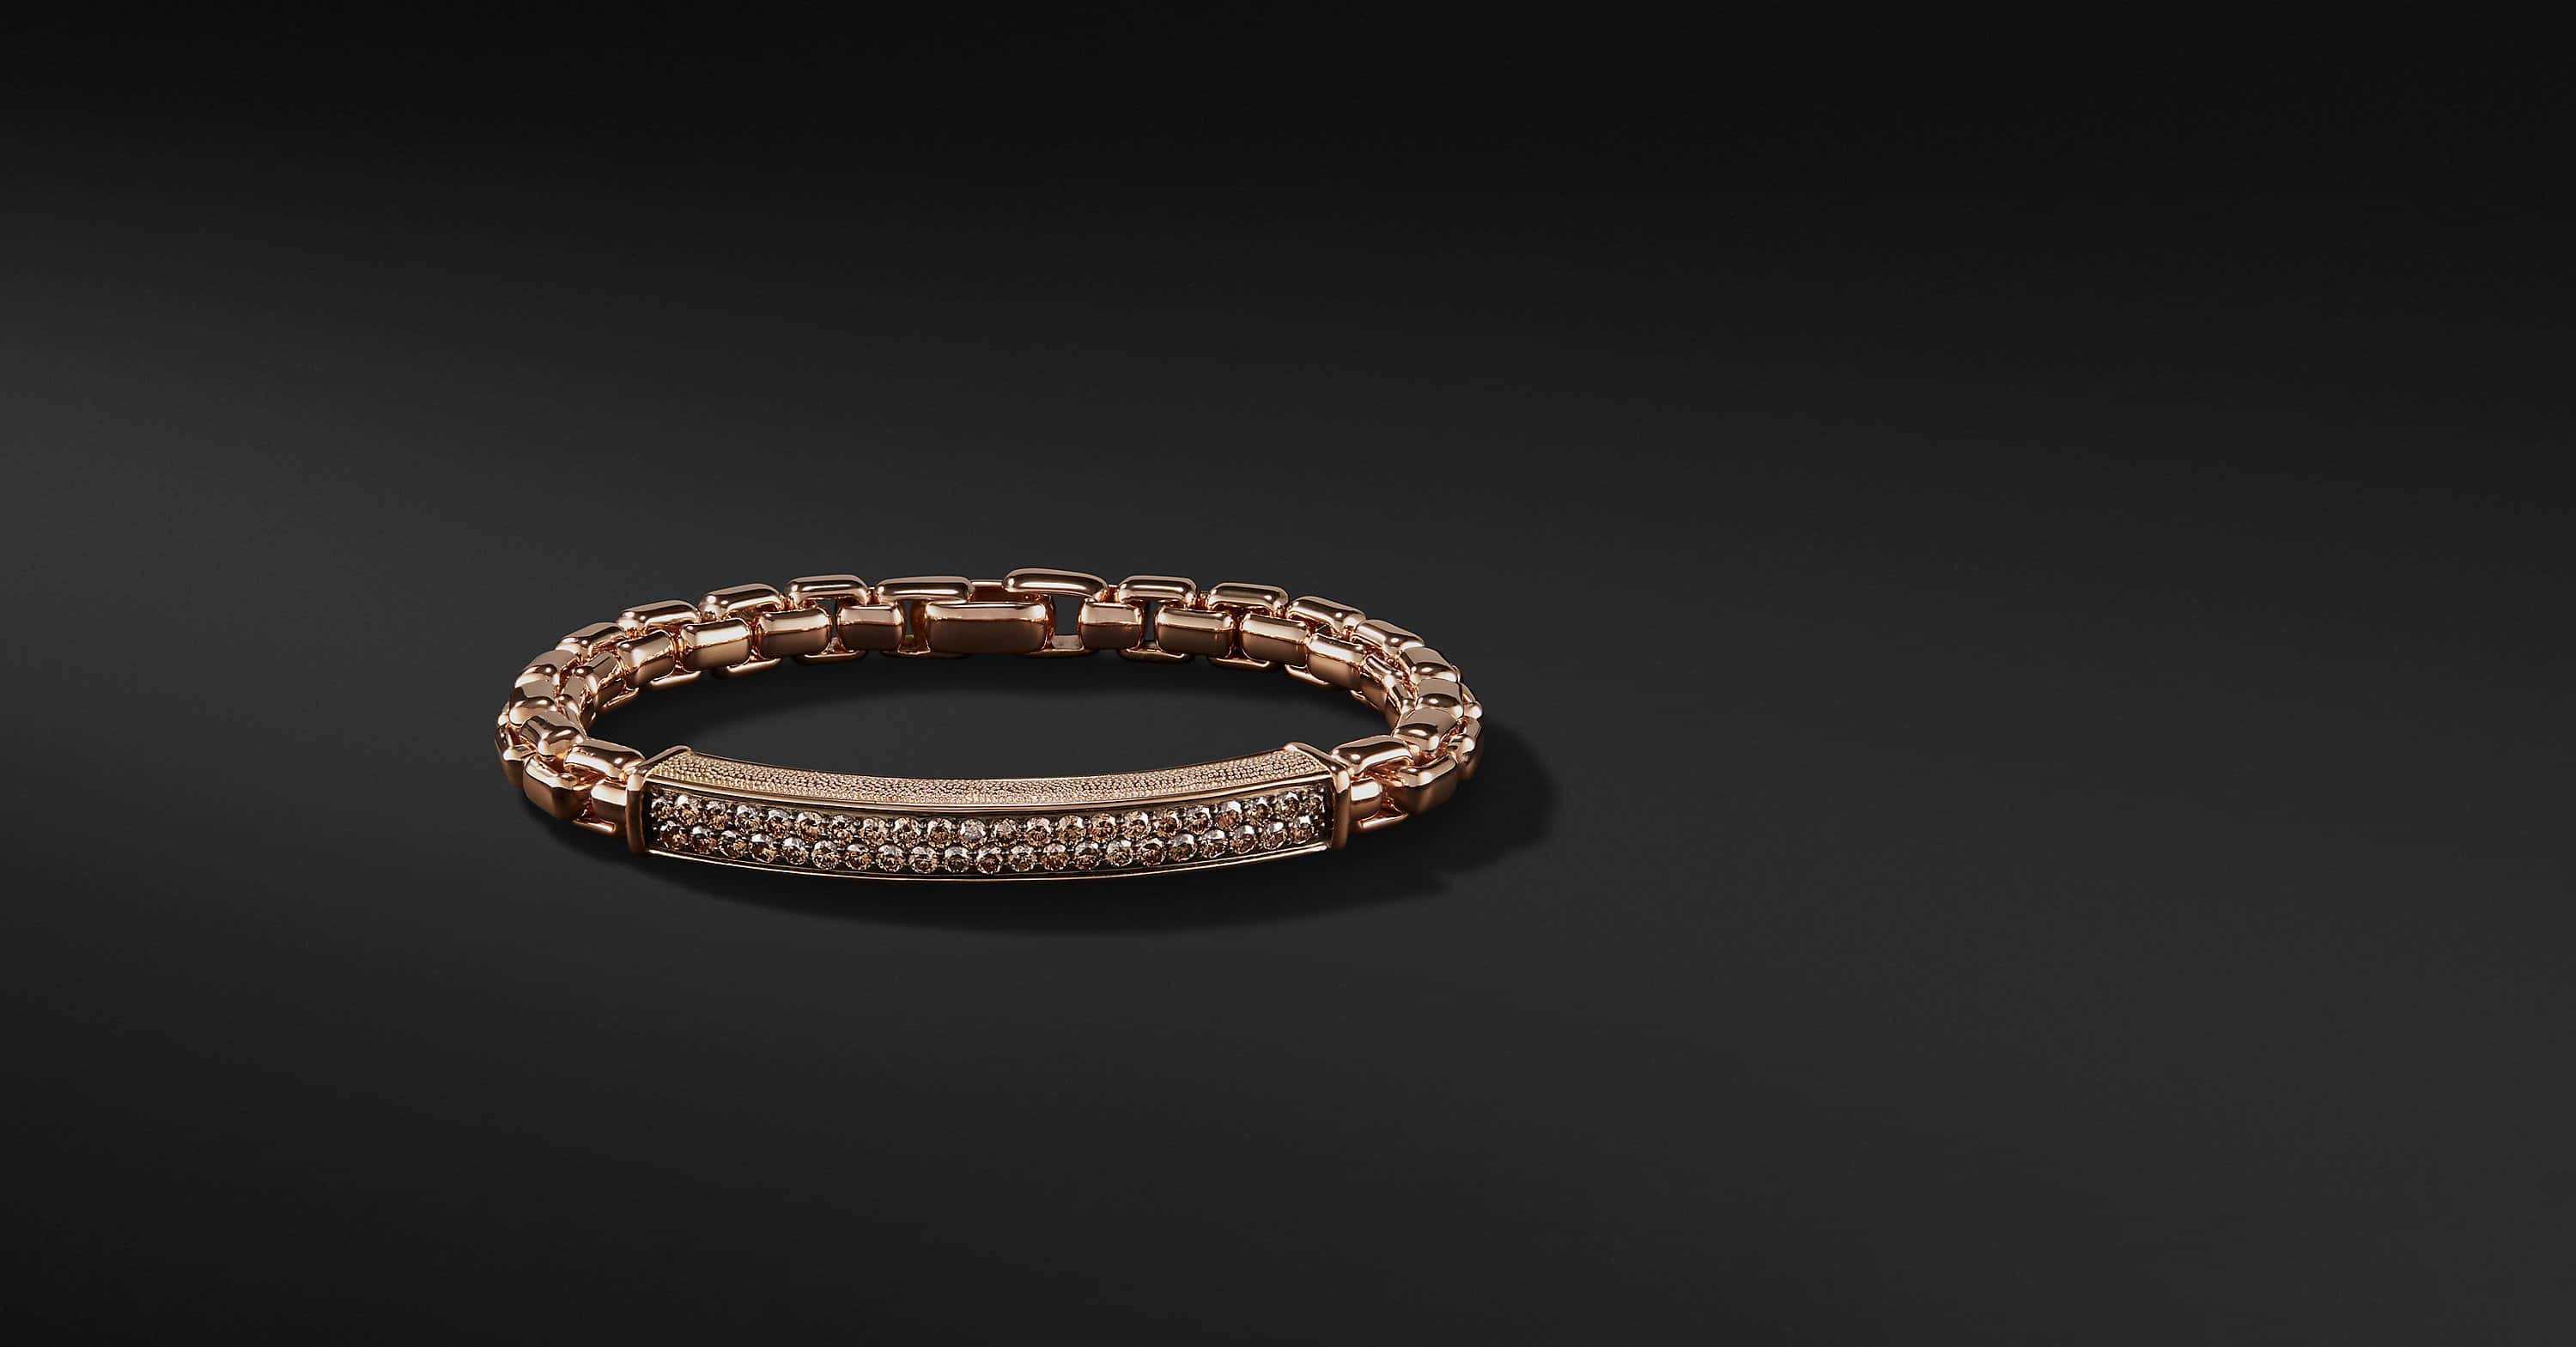 Bracelet Pavé avec diamants en or rose 18K